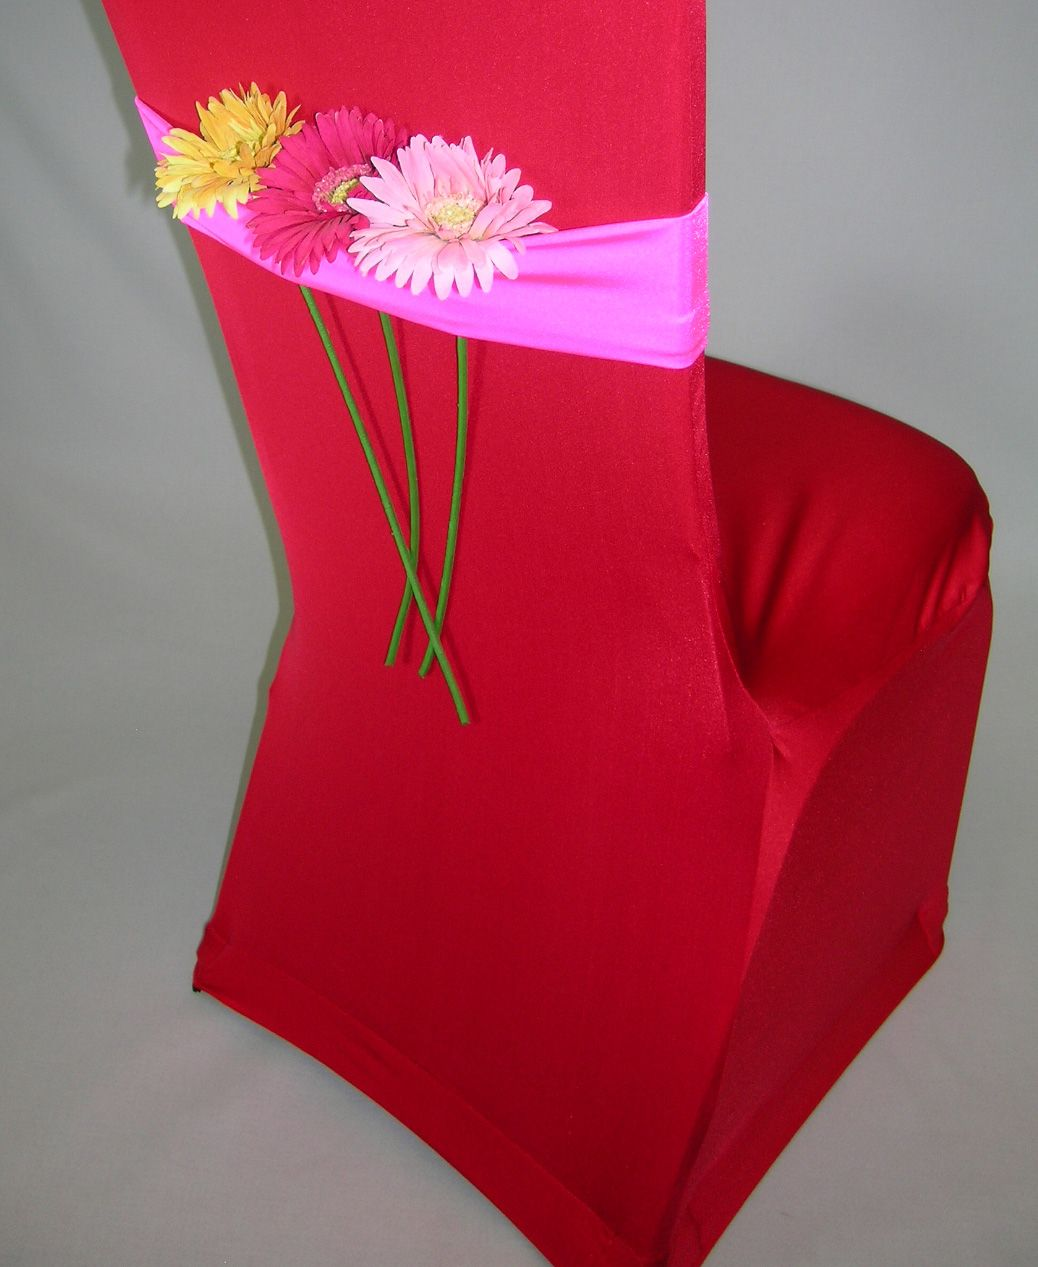 Hot Pink Spandex Chair Covers Costco Lift Red For Parties With Bands